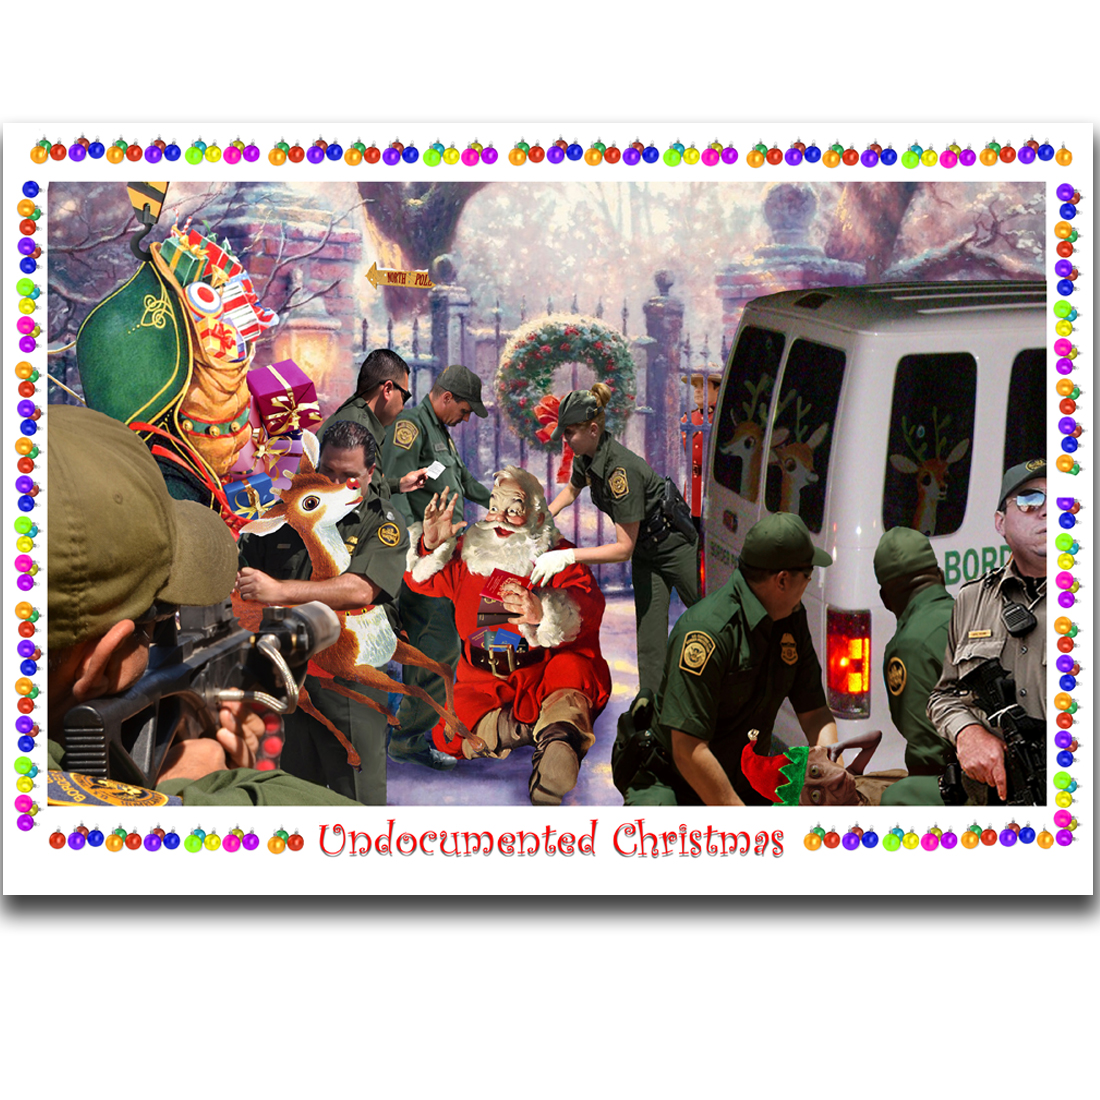 C476 Undocumented Christmas